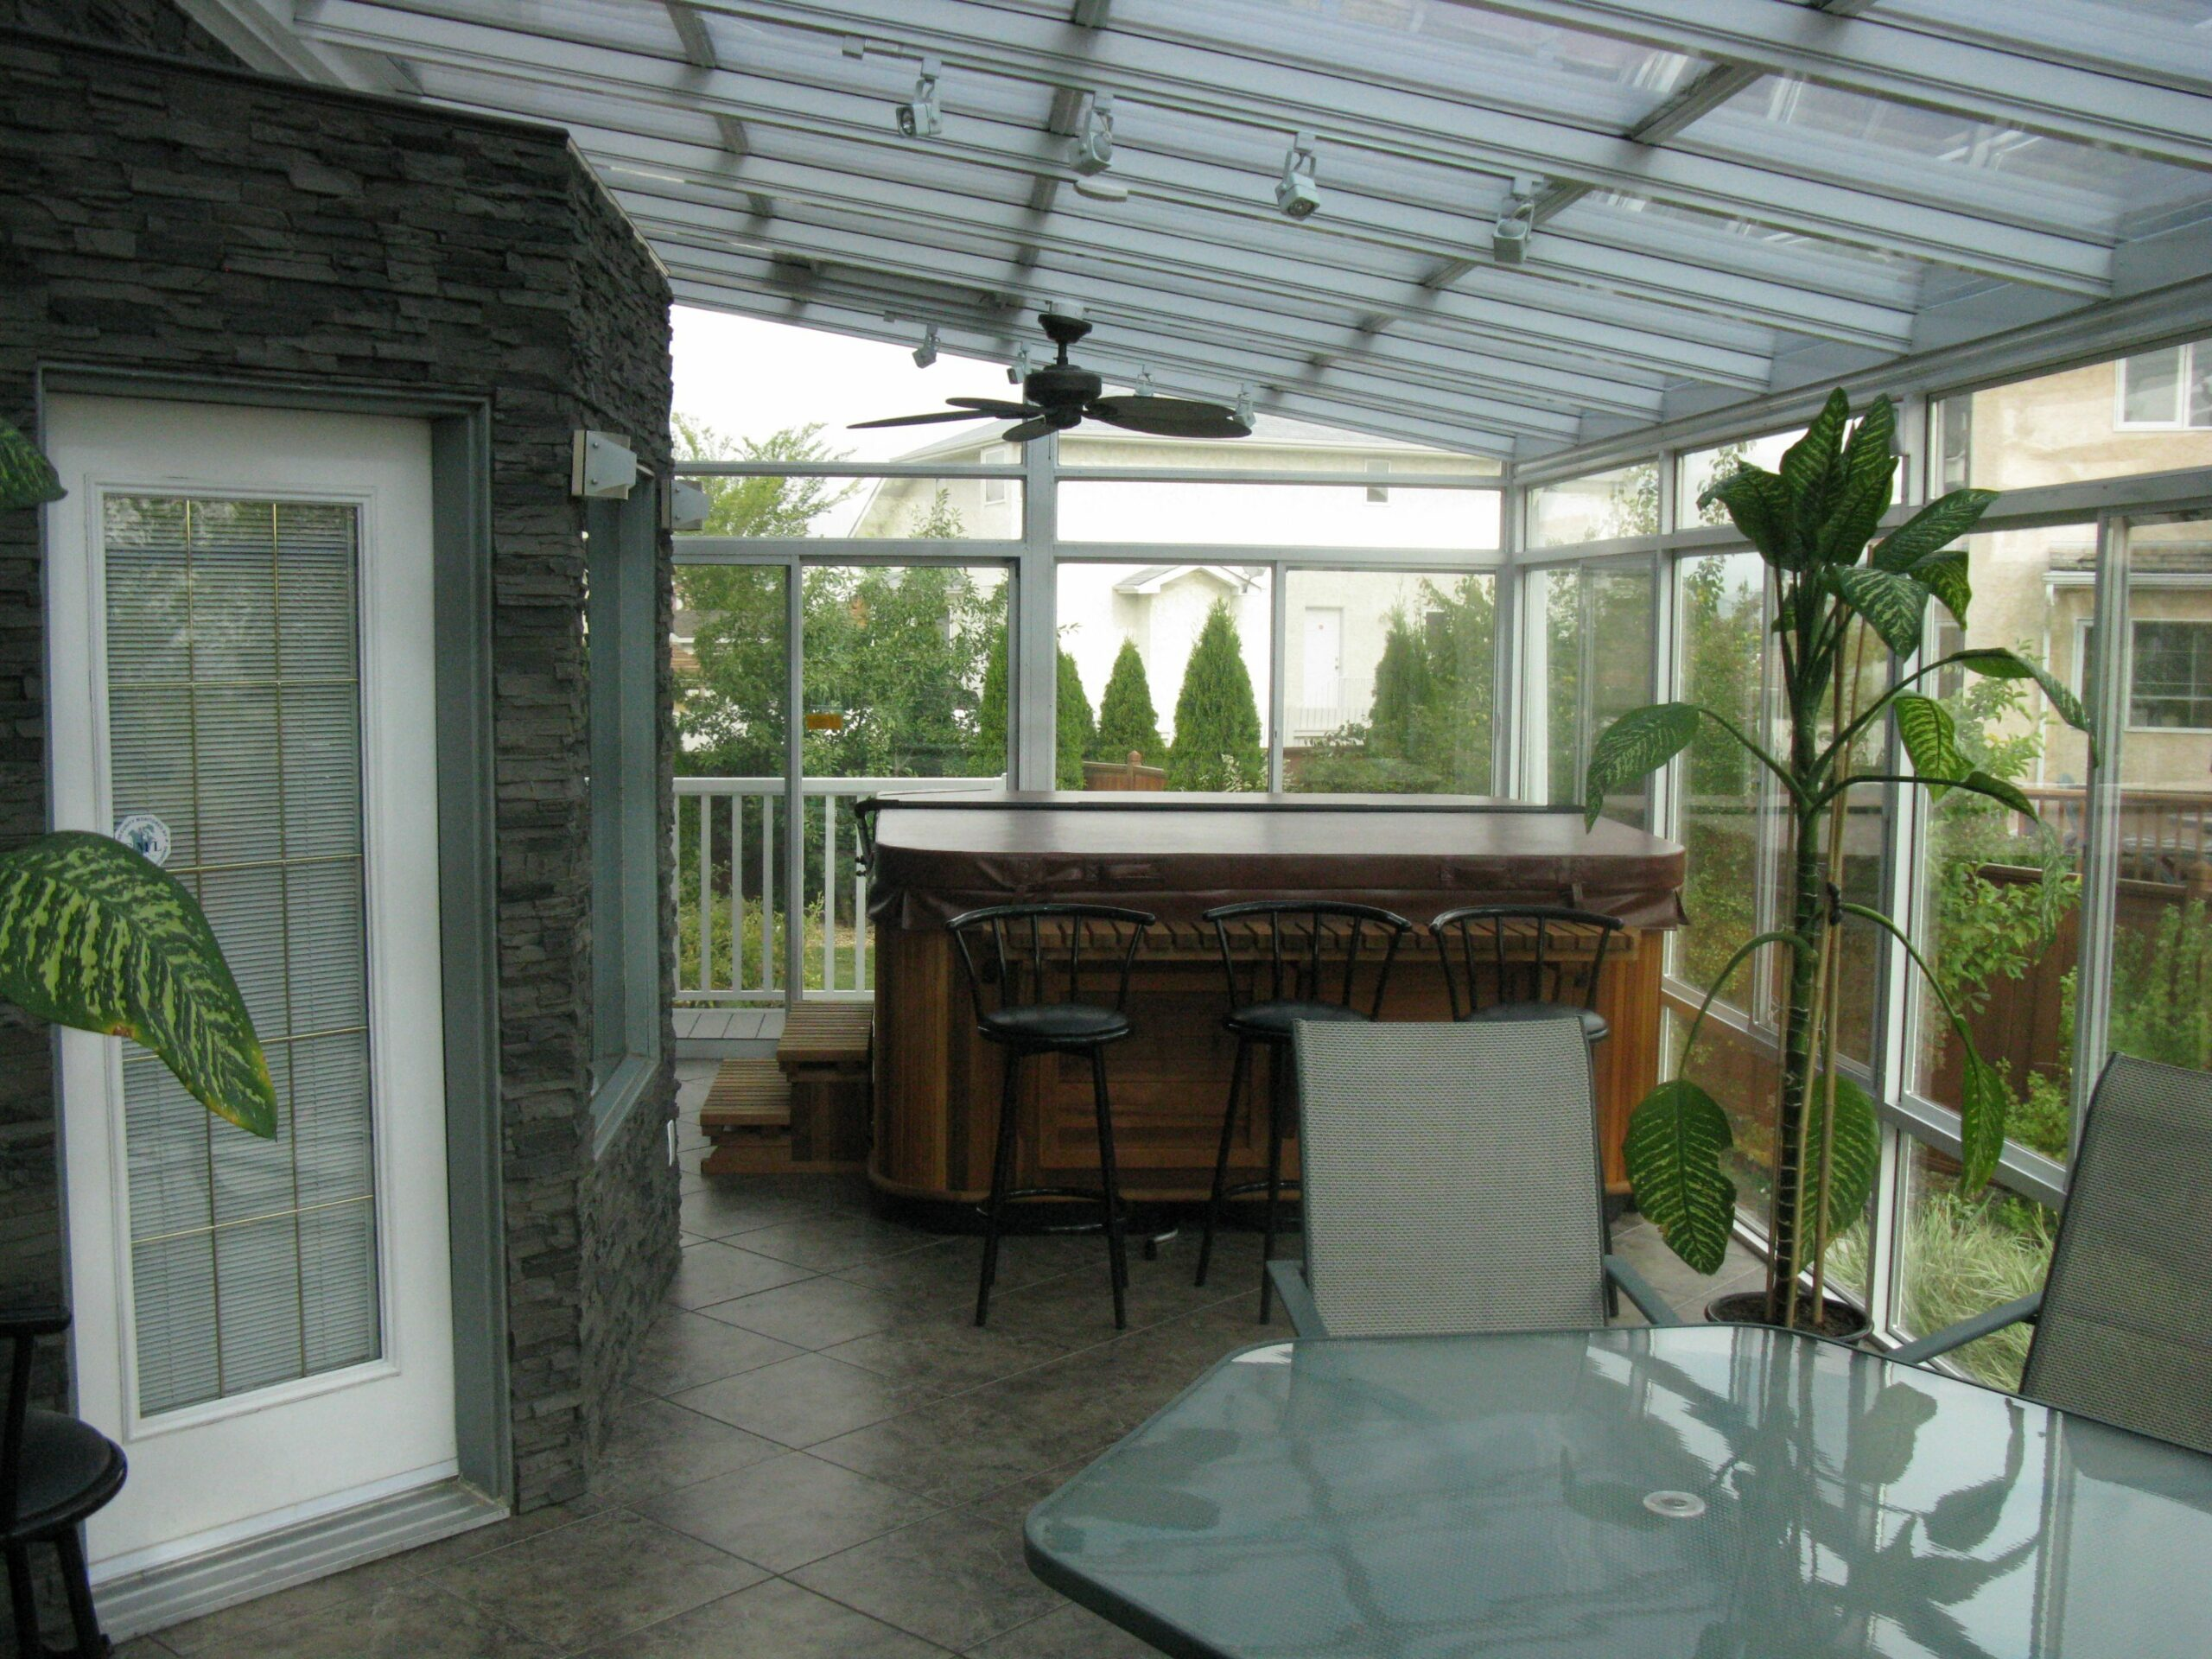 Hot tub in a sunroom is a common request. Will it heat the room ...